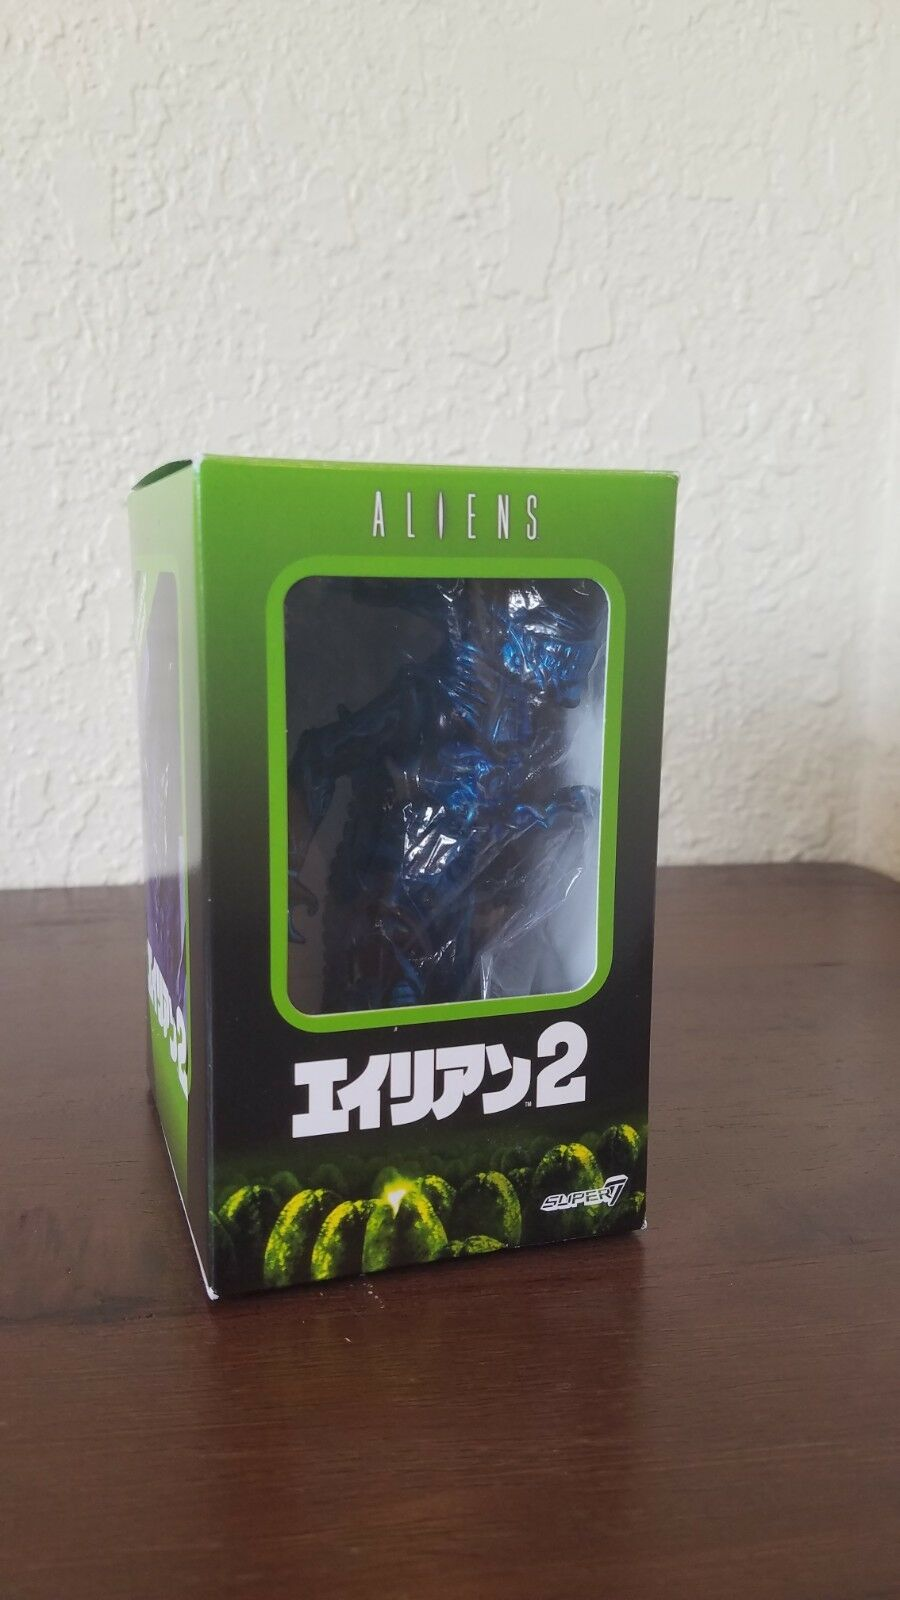 SDCC 2017 Super7 Metallic Blau Mayhem Alien Queen Japanese Vinyl Aliens Figure